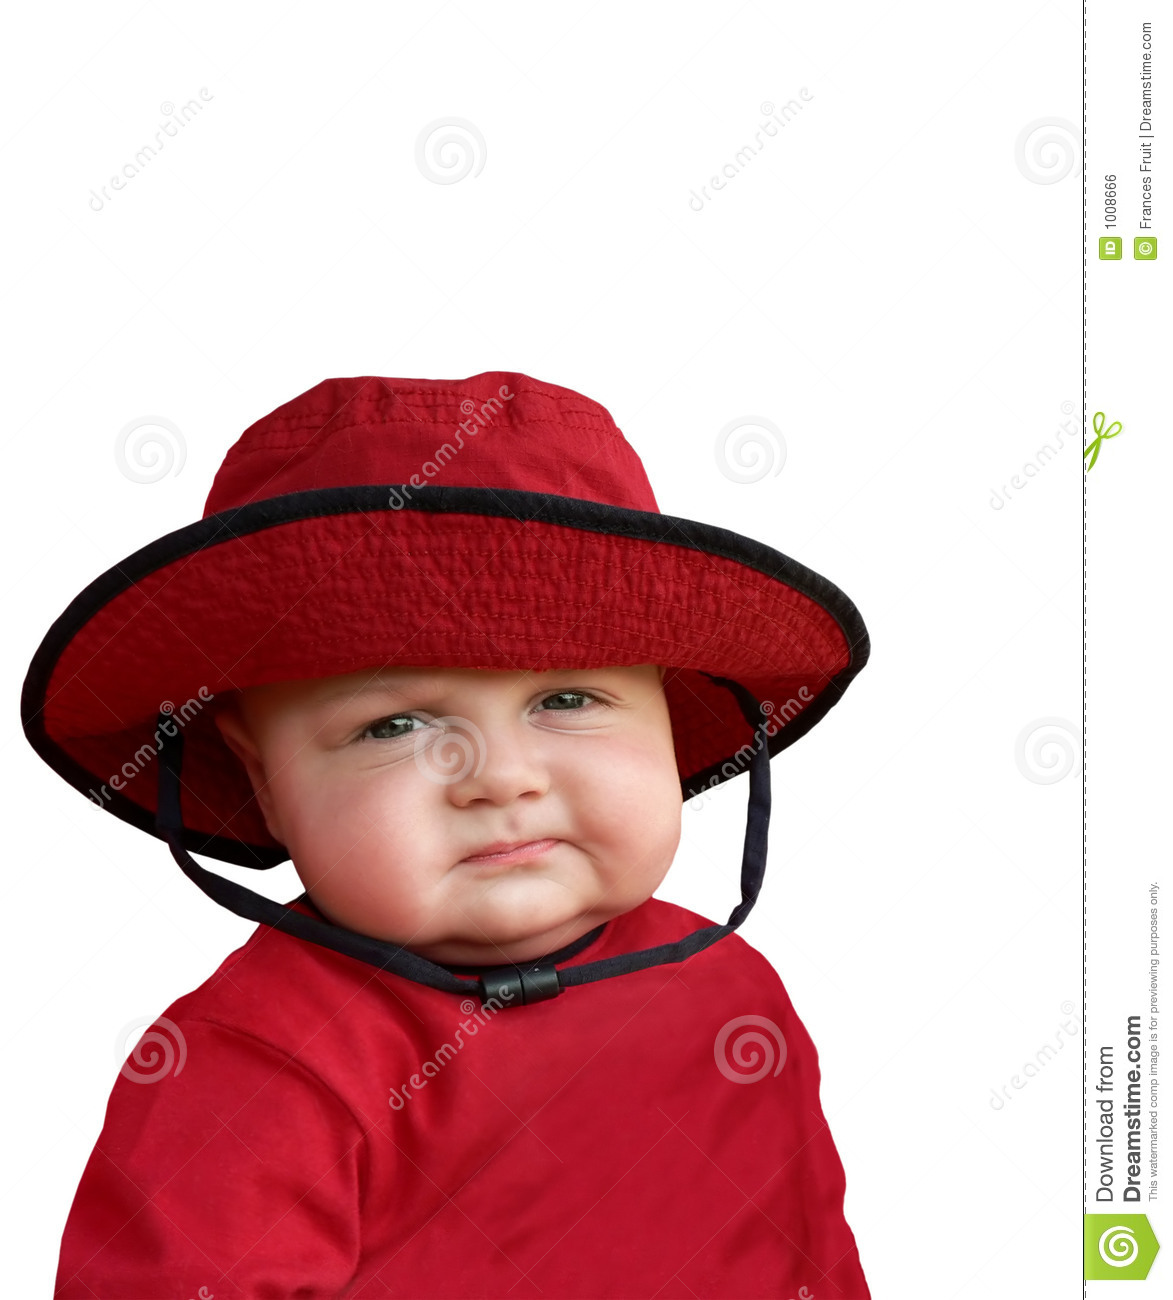 Skeptical baby in red hat. stock photo. Image of child - 1008666 ab4da860d2b